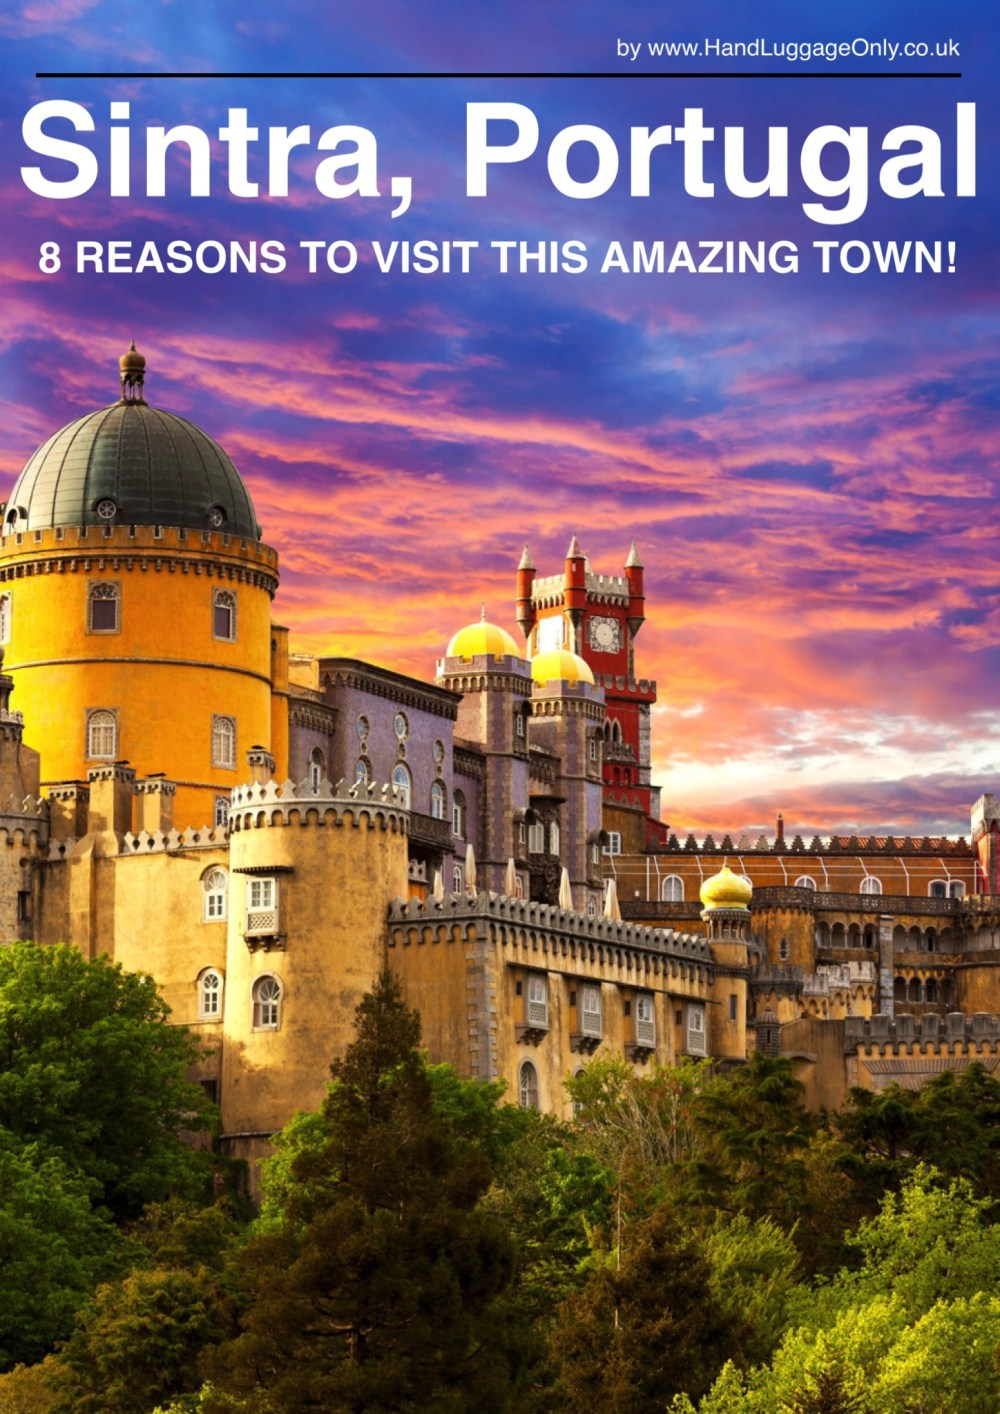 8 Reasons Why You Have To Visit Sintra In Portugal!